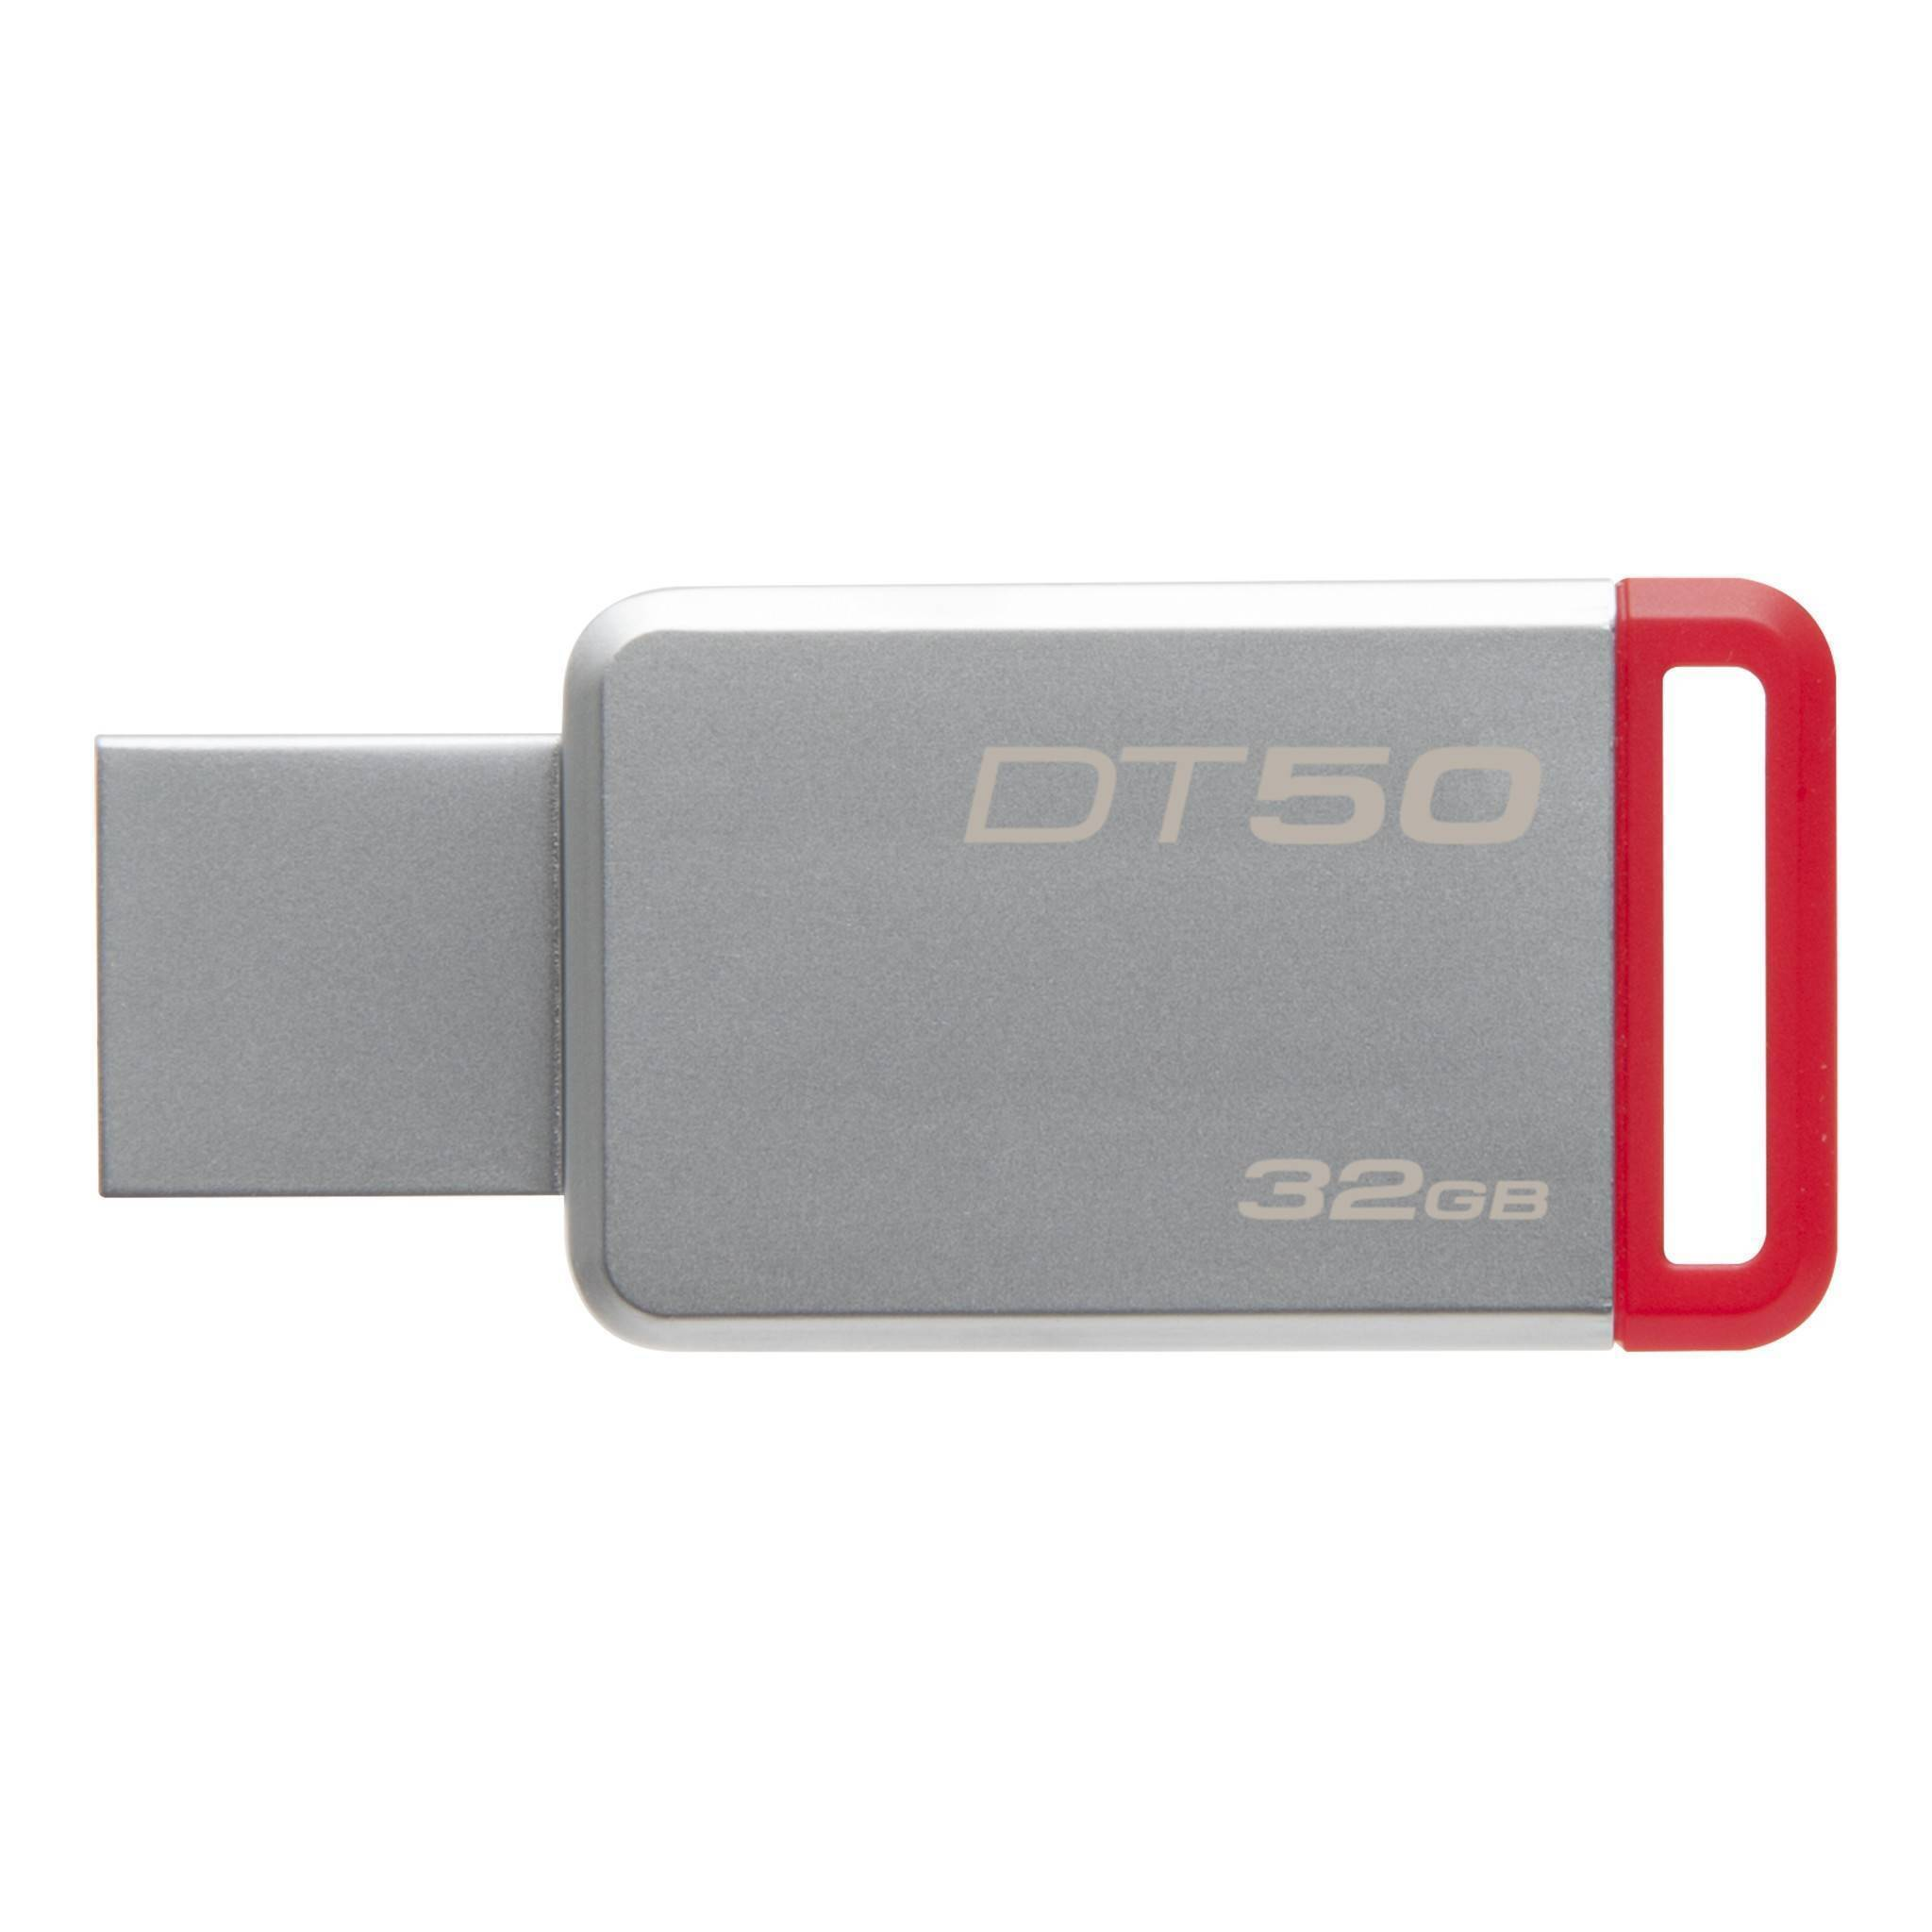 Kingston 32GB USB 2.0 Flash Drive in Pakistan